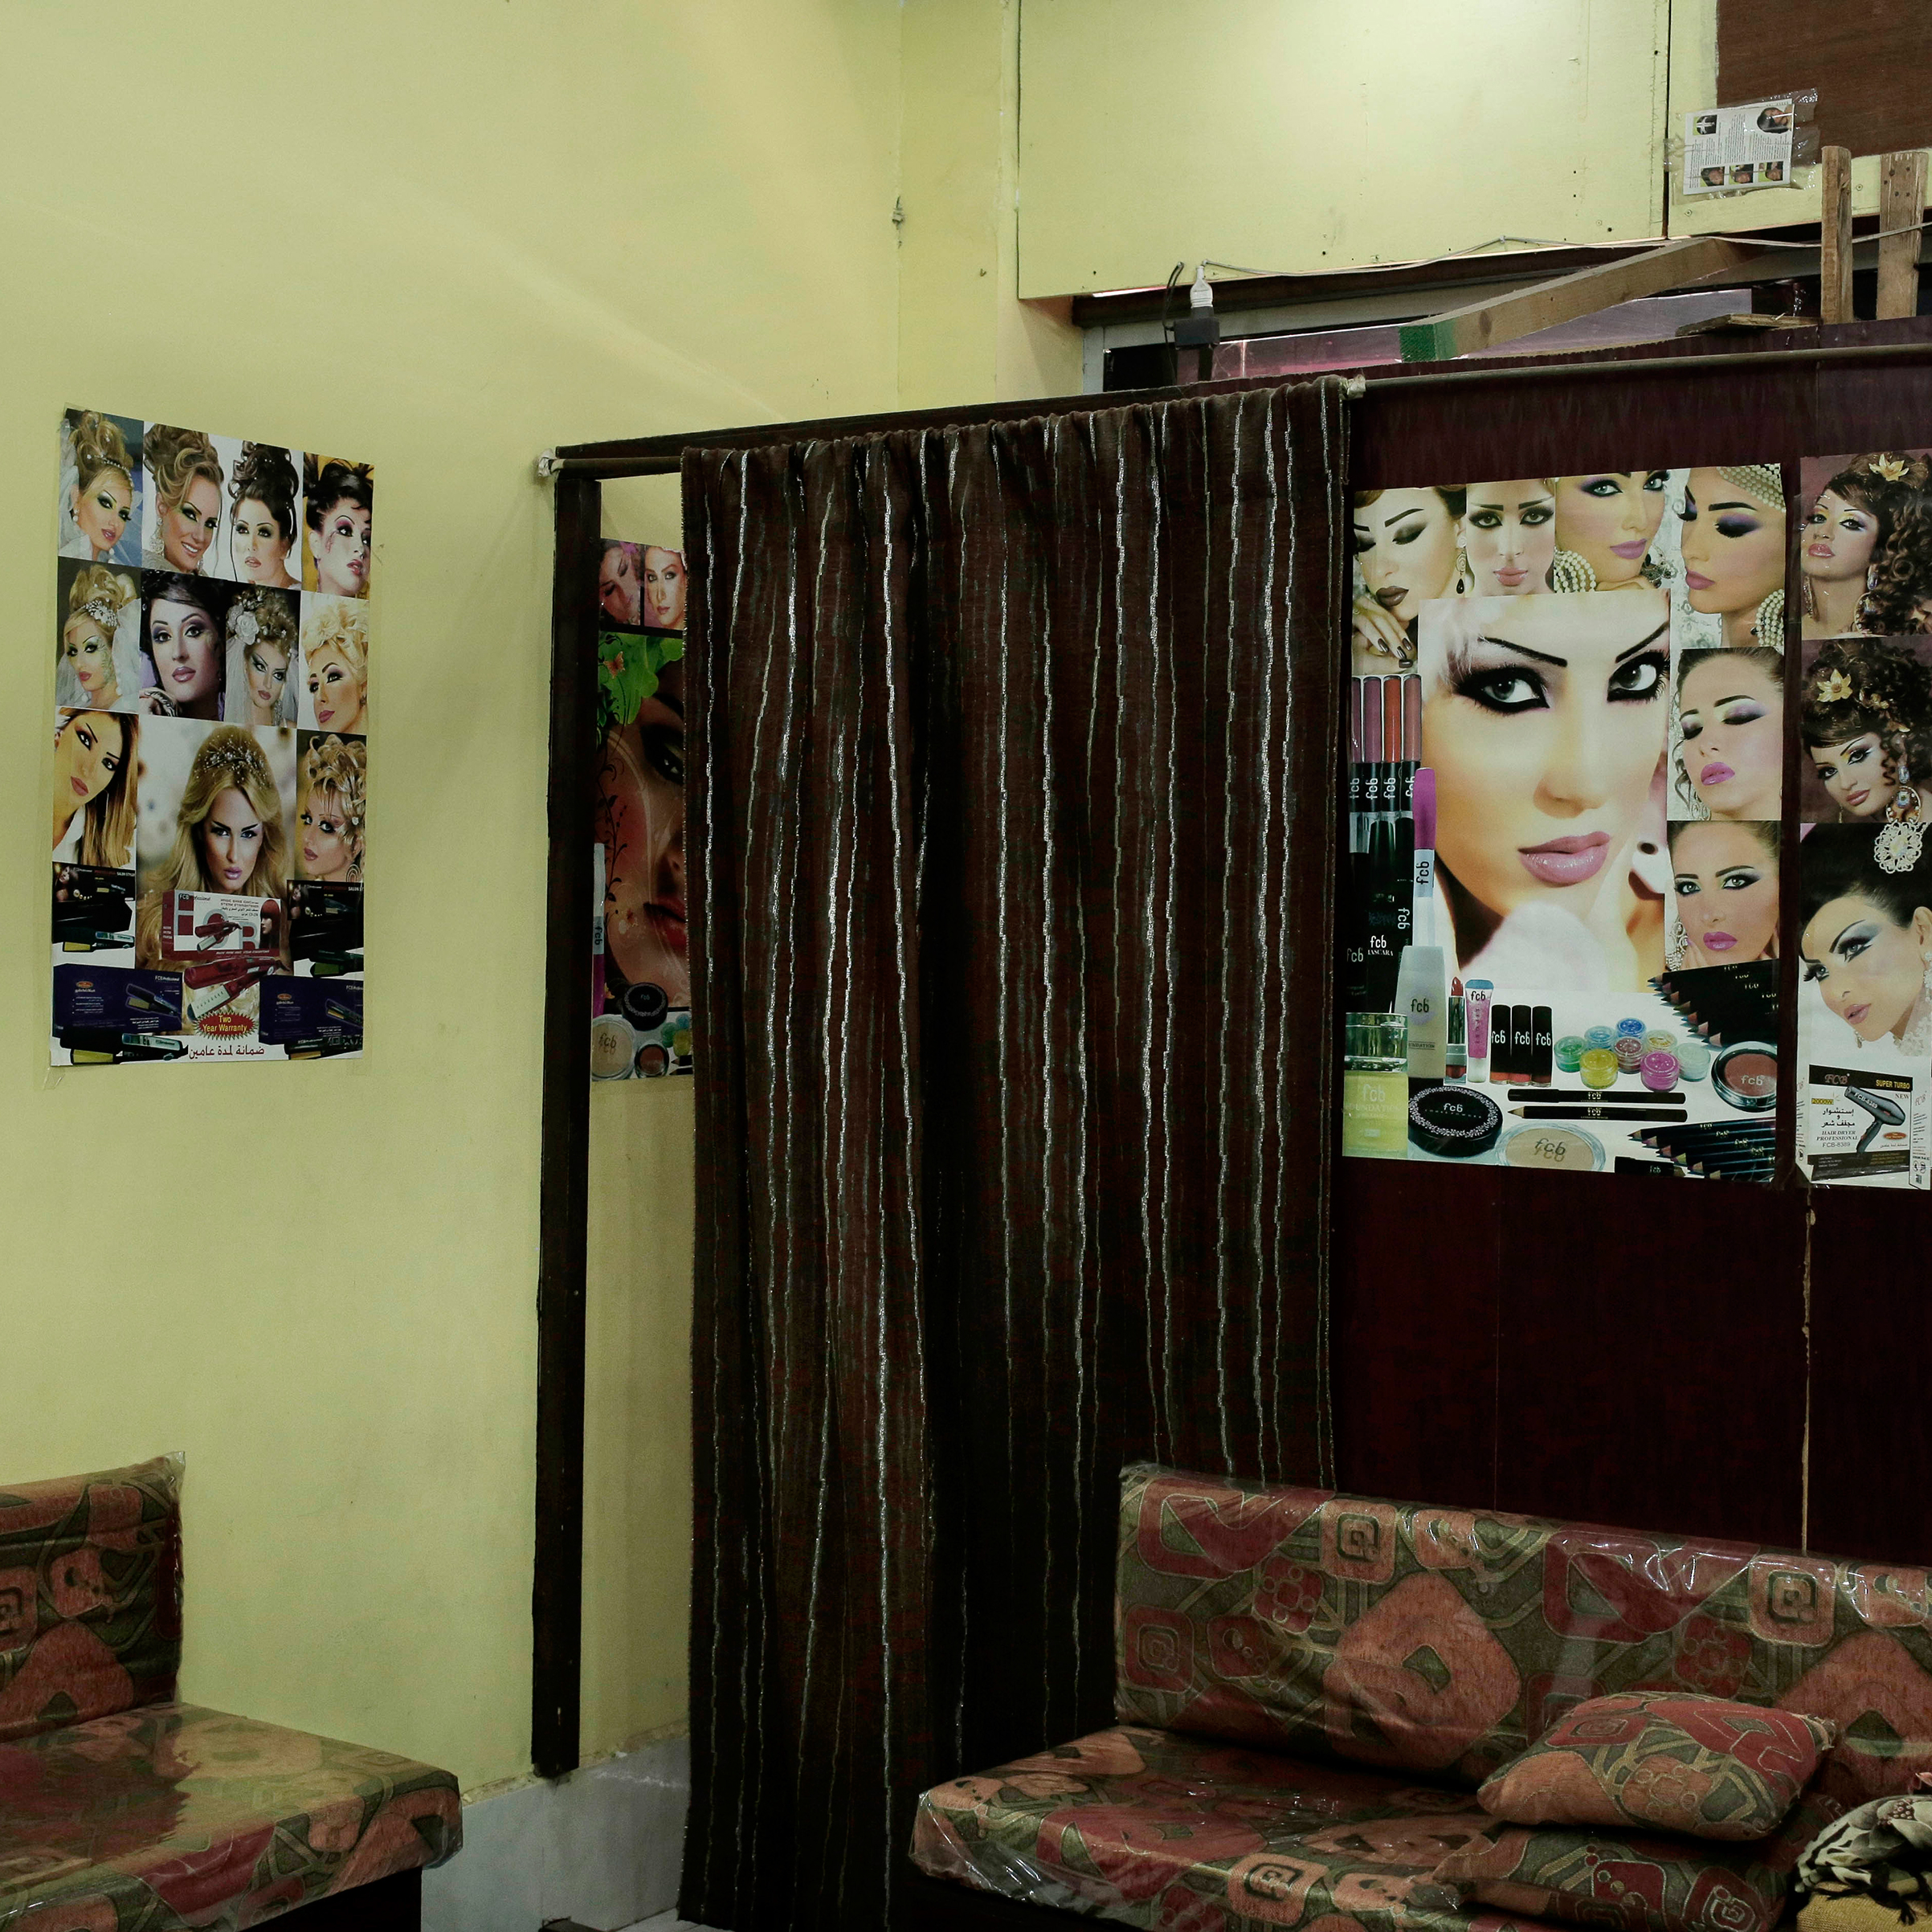 The interior of a women's hair salon in Aden on Feb. 18, 2018.